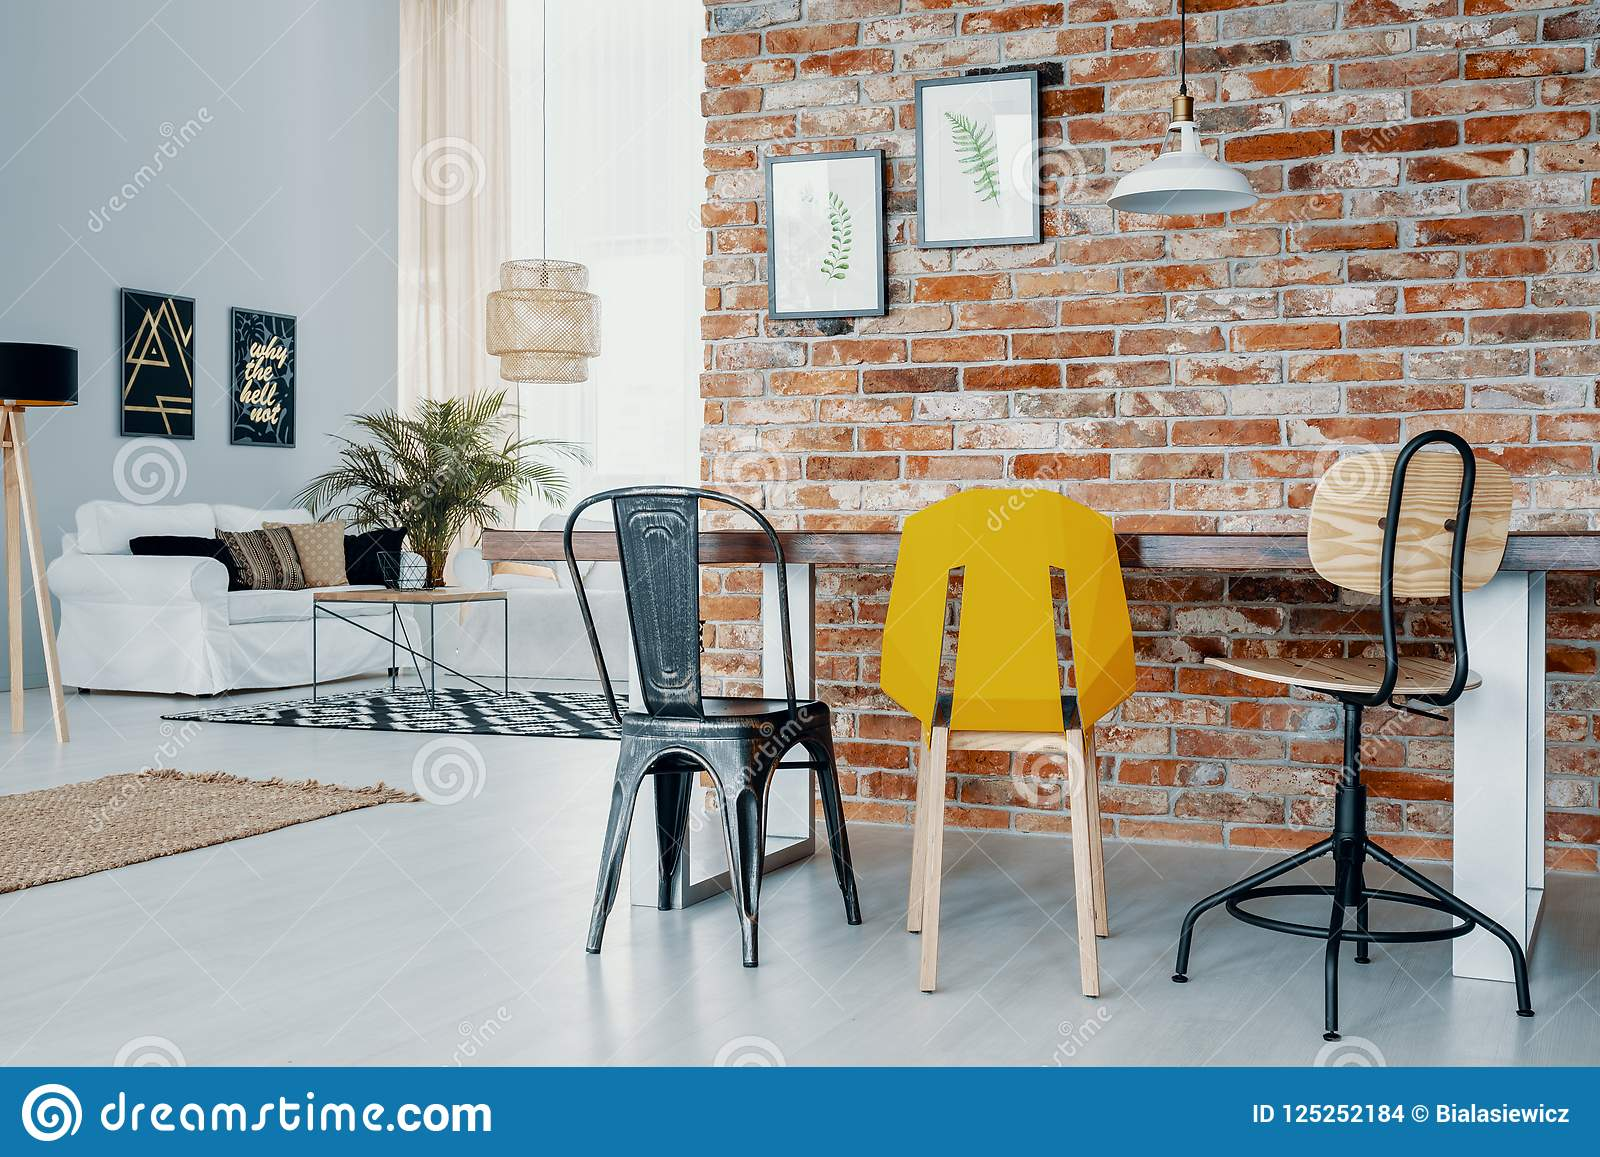 Chairs At Dining Table Against Red Brick Wall With Posters In Open Space Interior With White Sofa Real Photo Stock Photo Image Of Modern Furniture 125252184